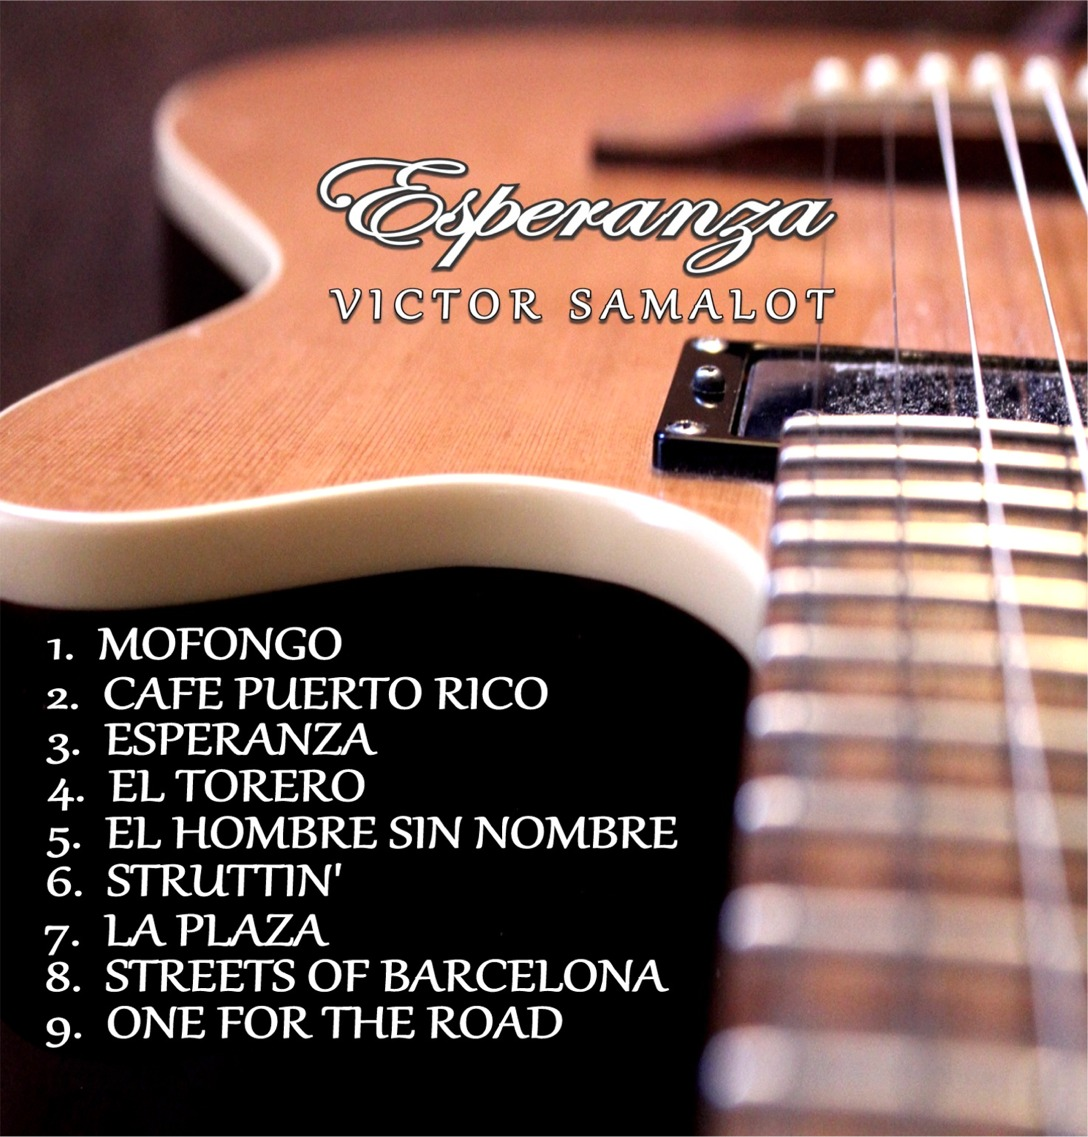 Victor Samalot, Esperanza, Music Review, Indie Blog, Independent Music, Unsigned Artists, Guitarists, Instrumental Music, Music Promotion, Musicians, Composer,